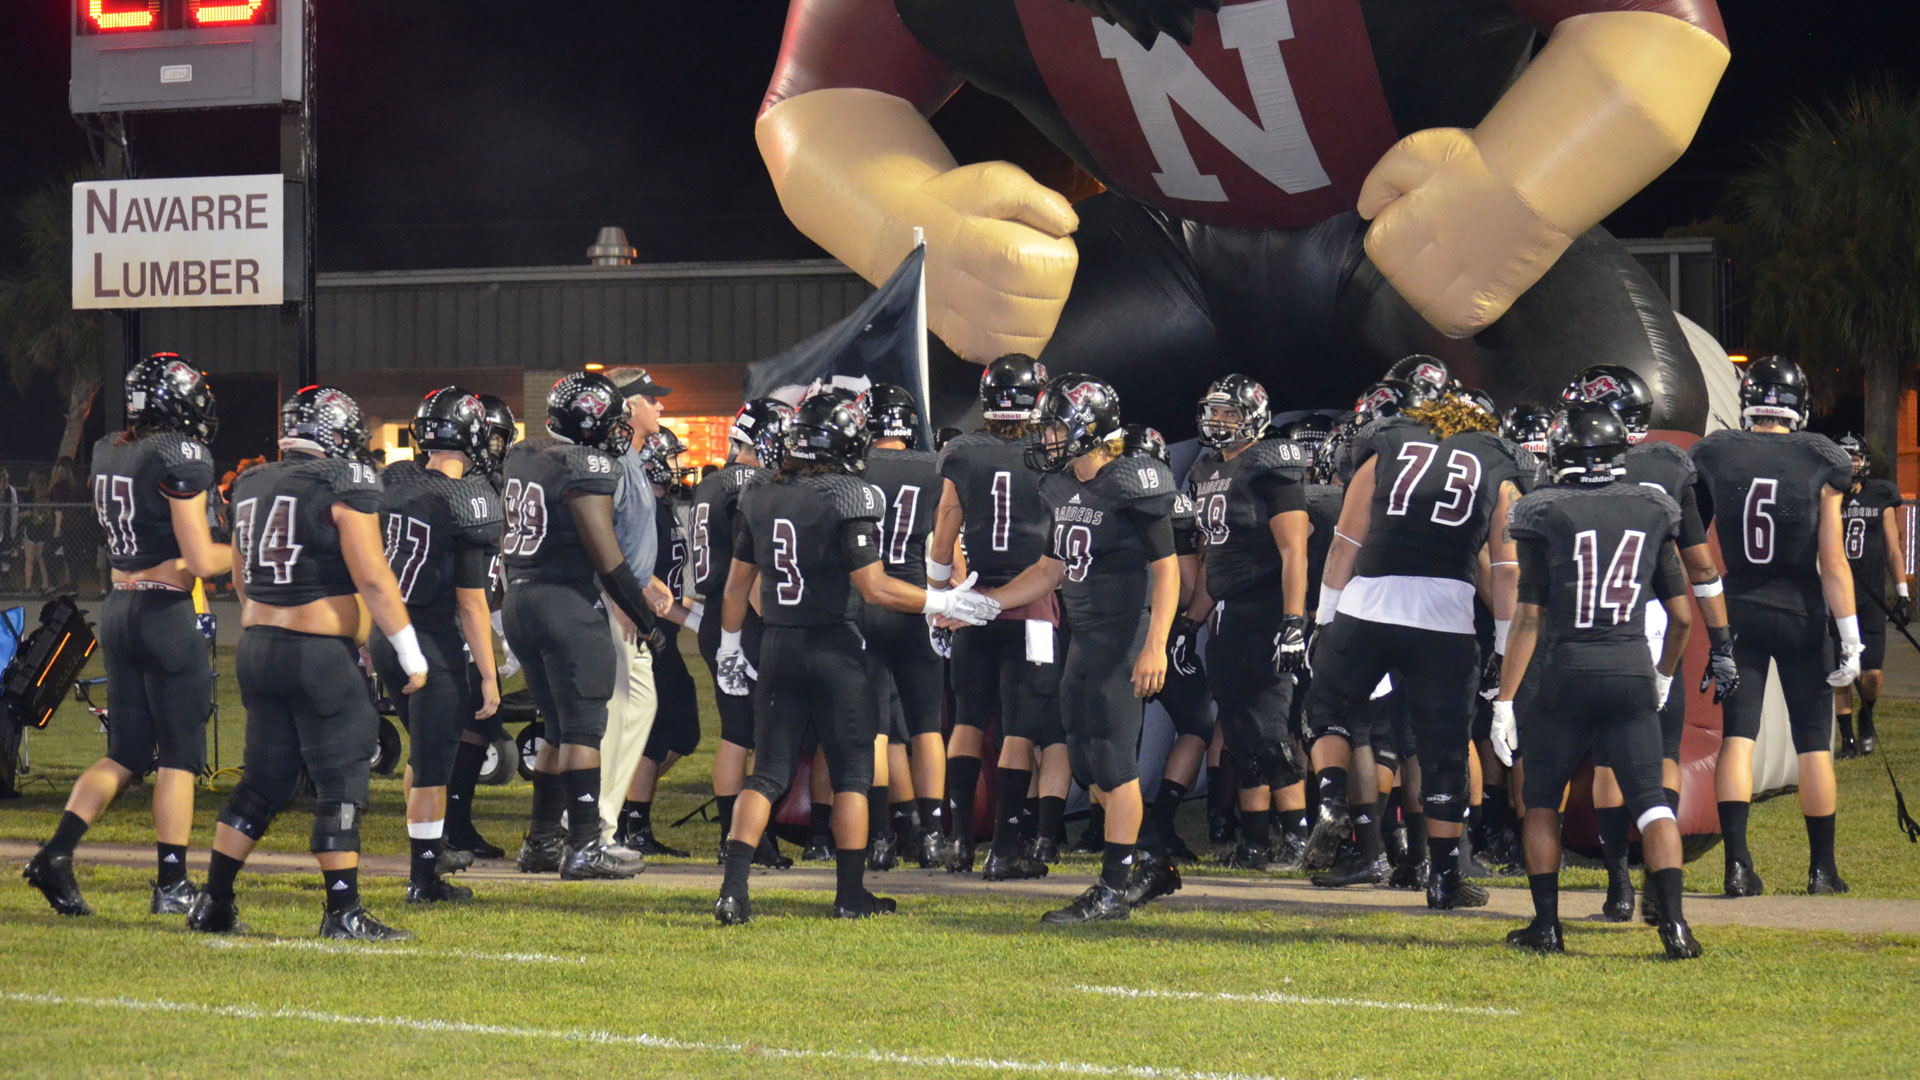 navarre raiders quarterback club